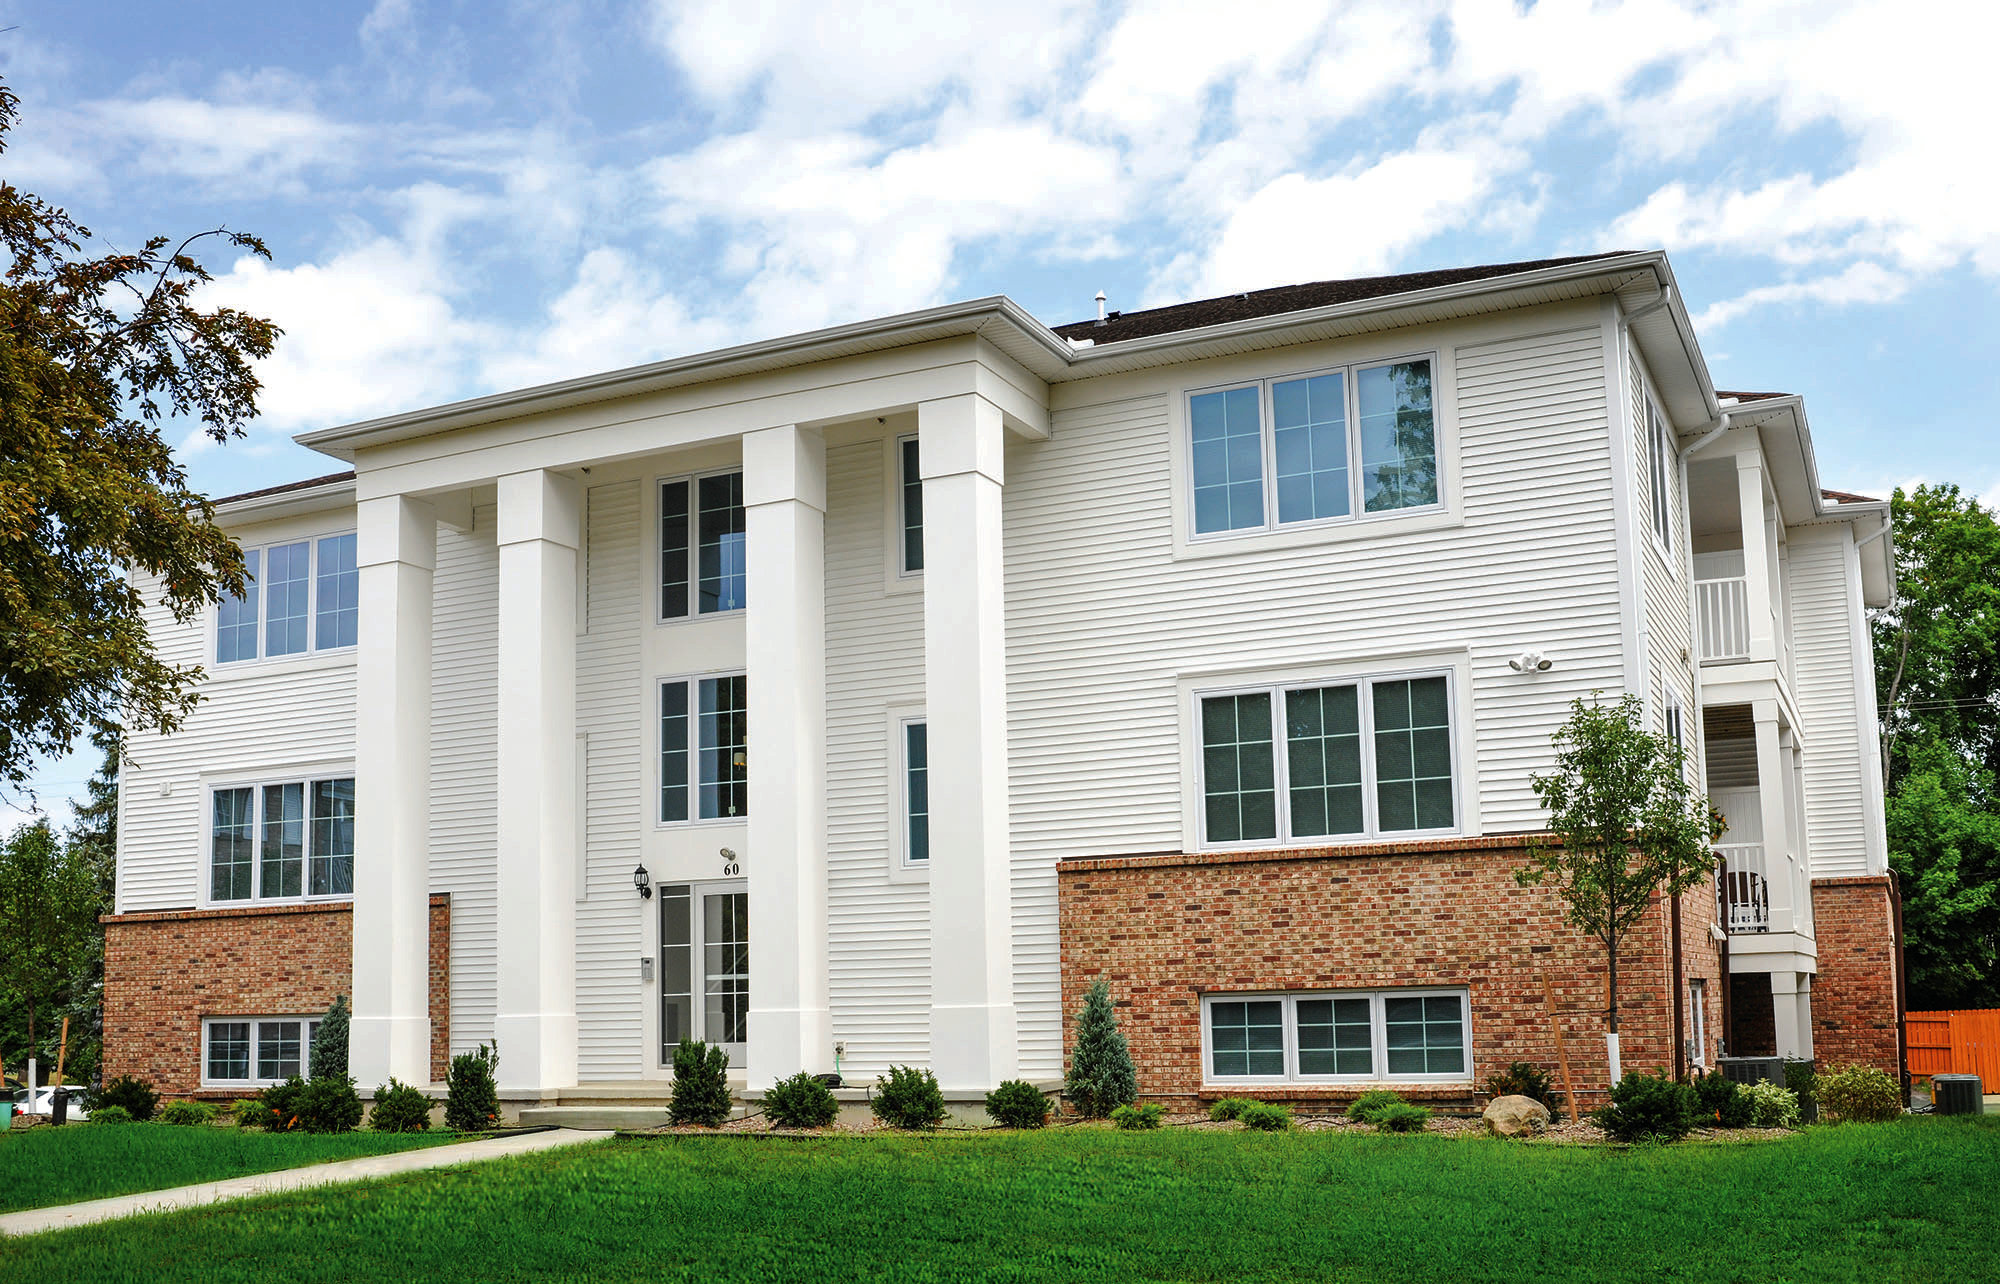 Welcome to Green Lake Apartments in Orchard Park, NY